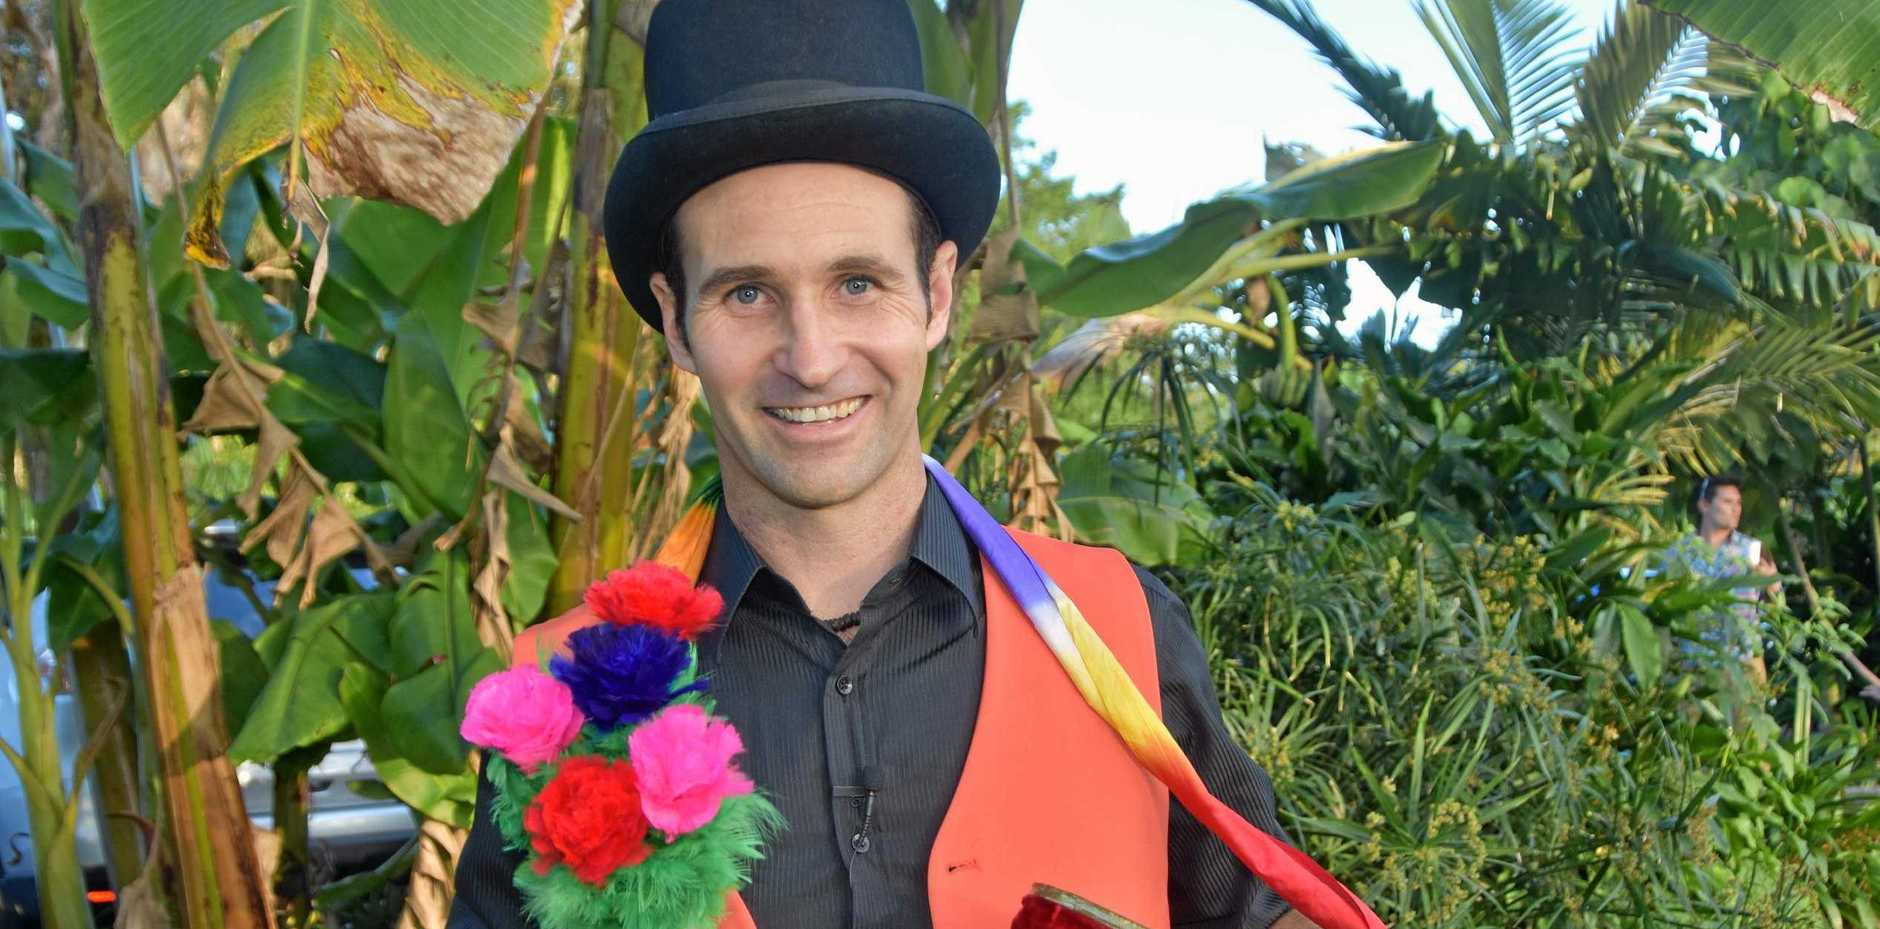 Magician Craig Hubbard combine his love of sleight of hand magicc with the magic of growing fresh produce at Shambhala Farm in Doonan.